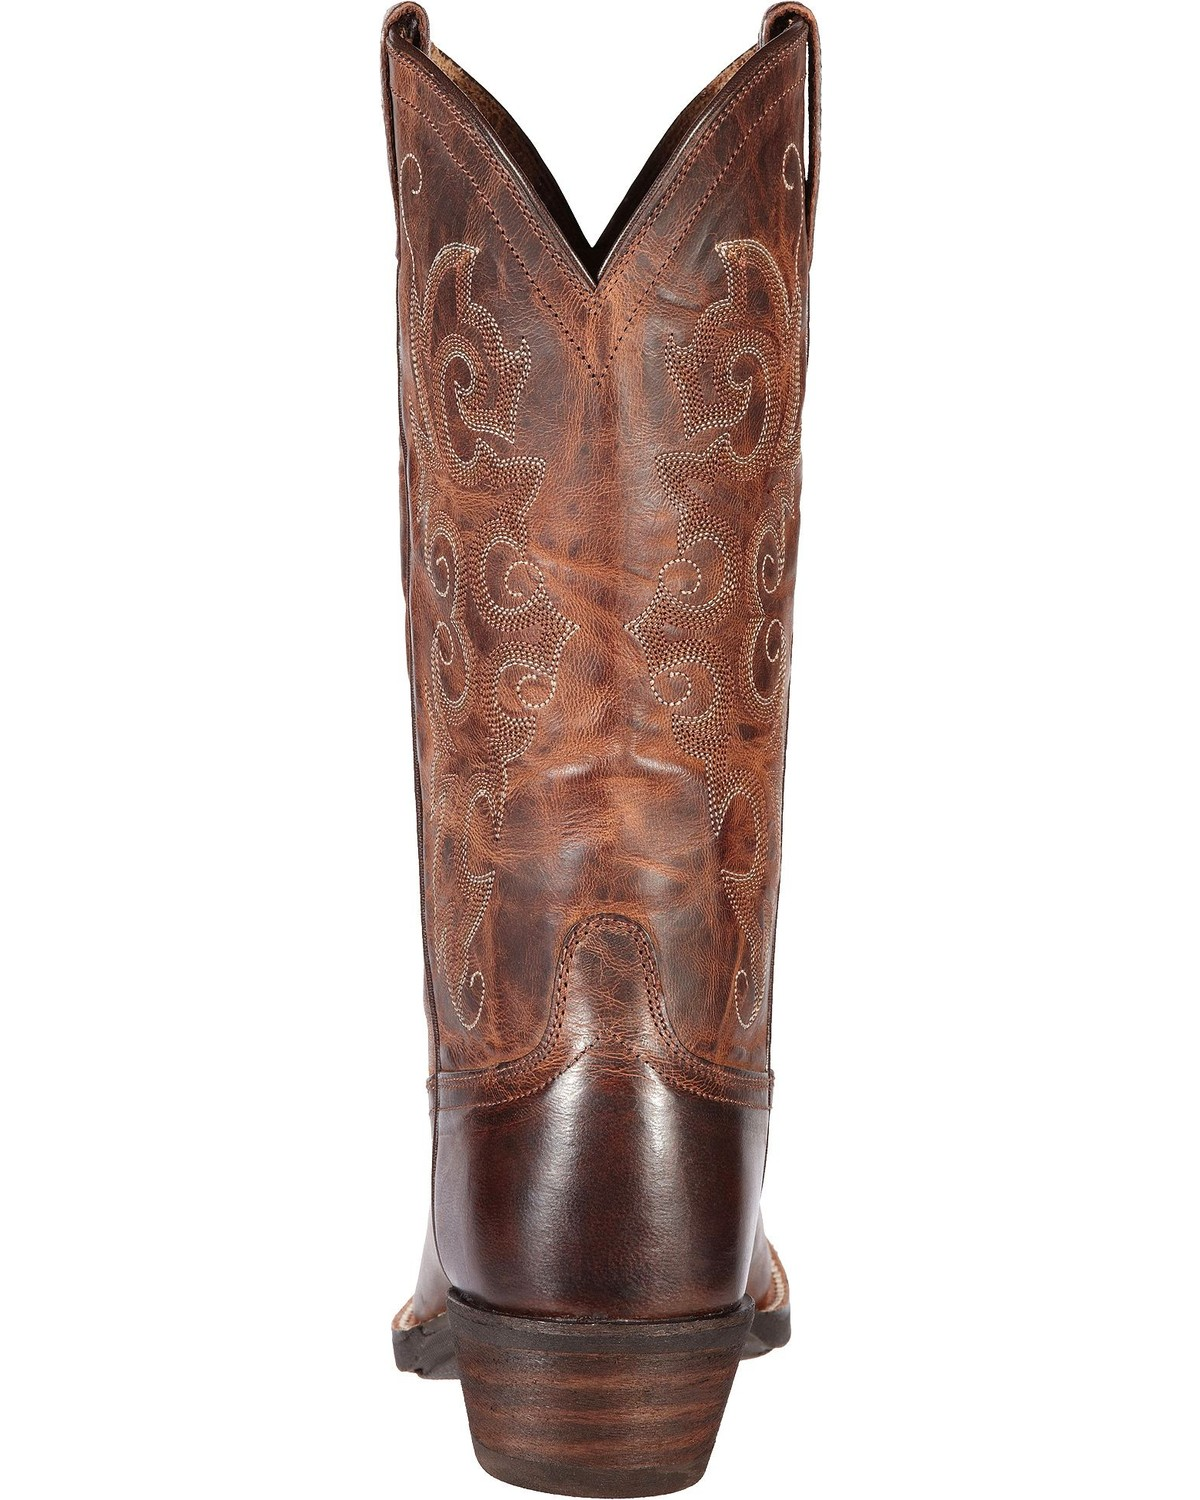 Ariat Alabama Cowgirl Boots - Snip Toe | Sheplers